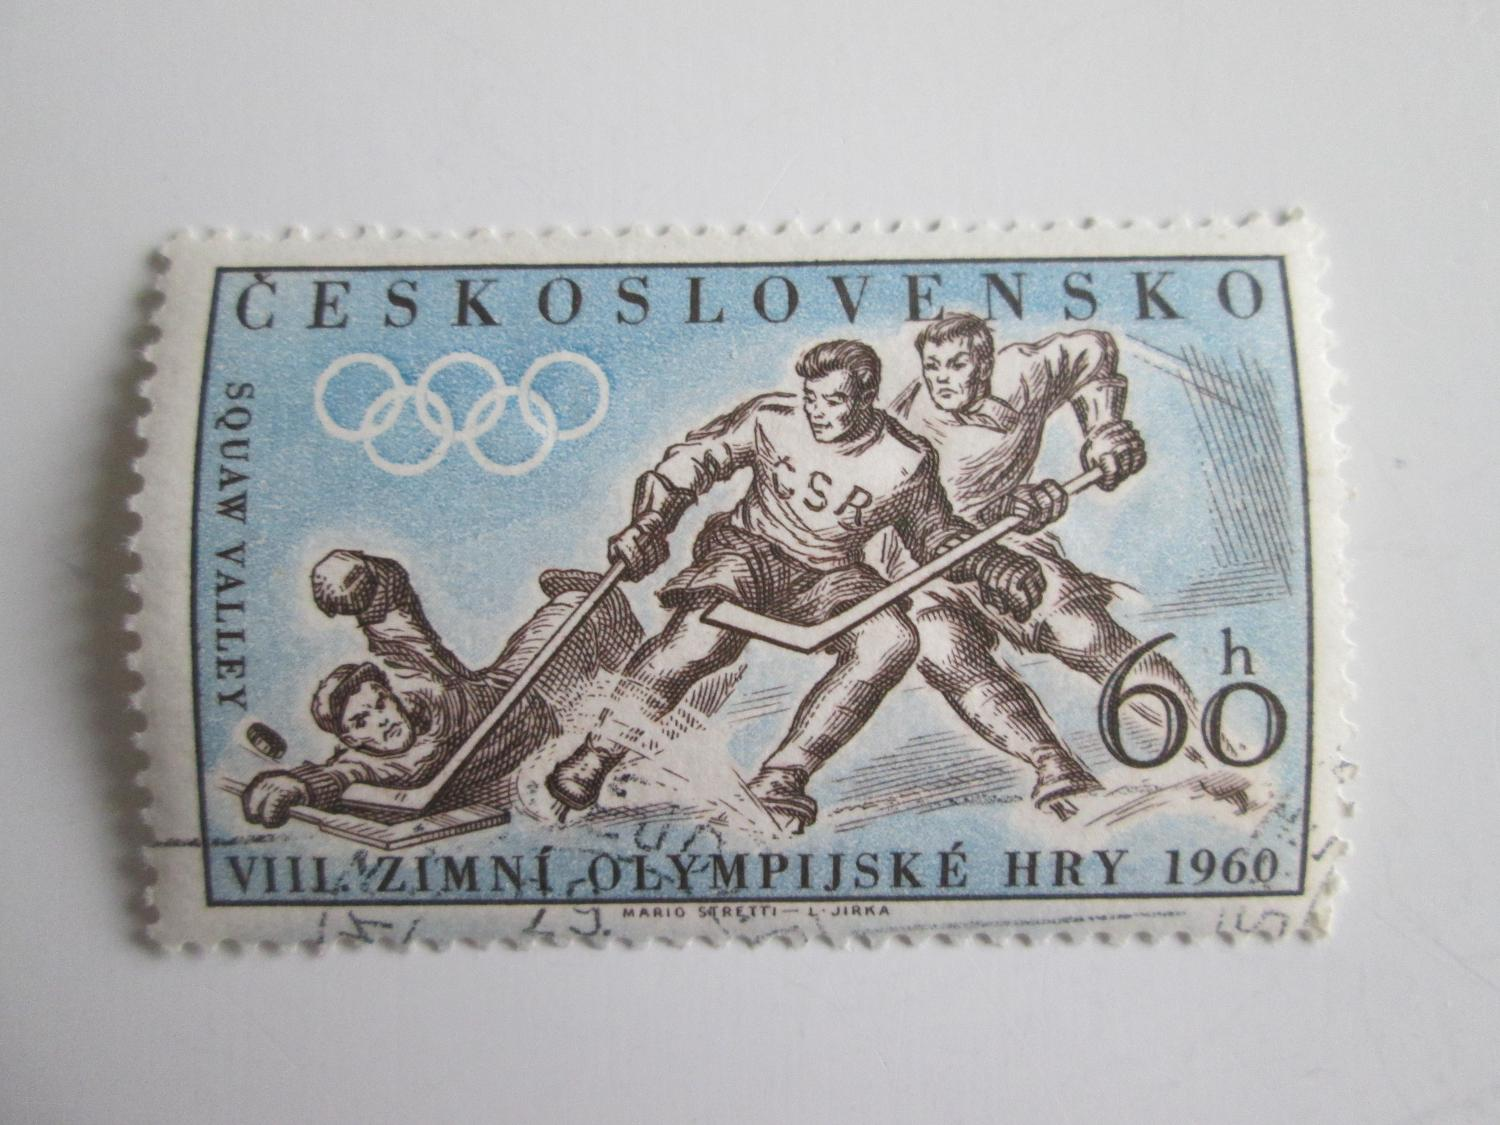 Find More Czechoslovakia Ice Hockey Postage Stamp 1960 For Sale At